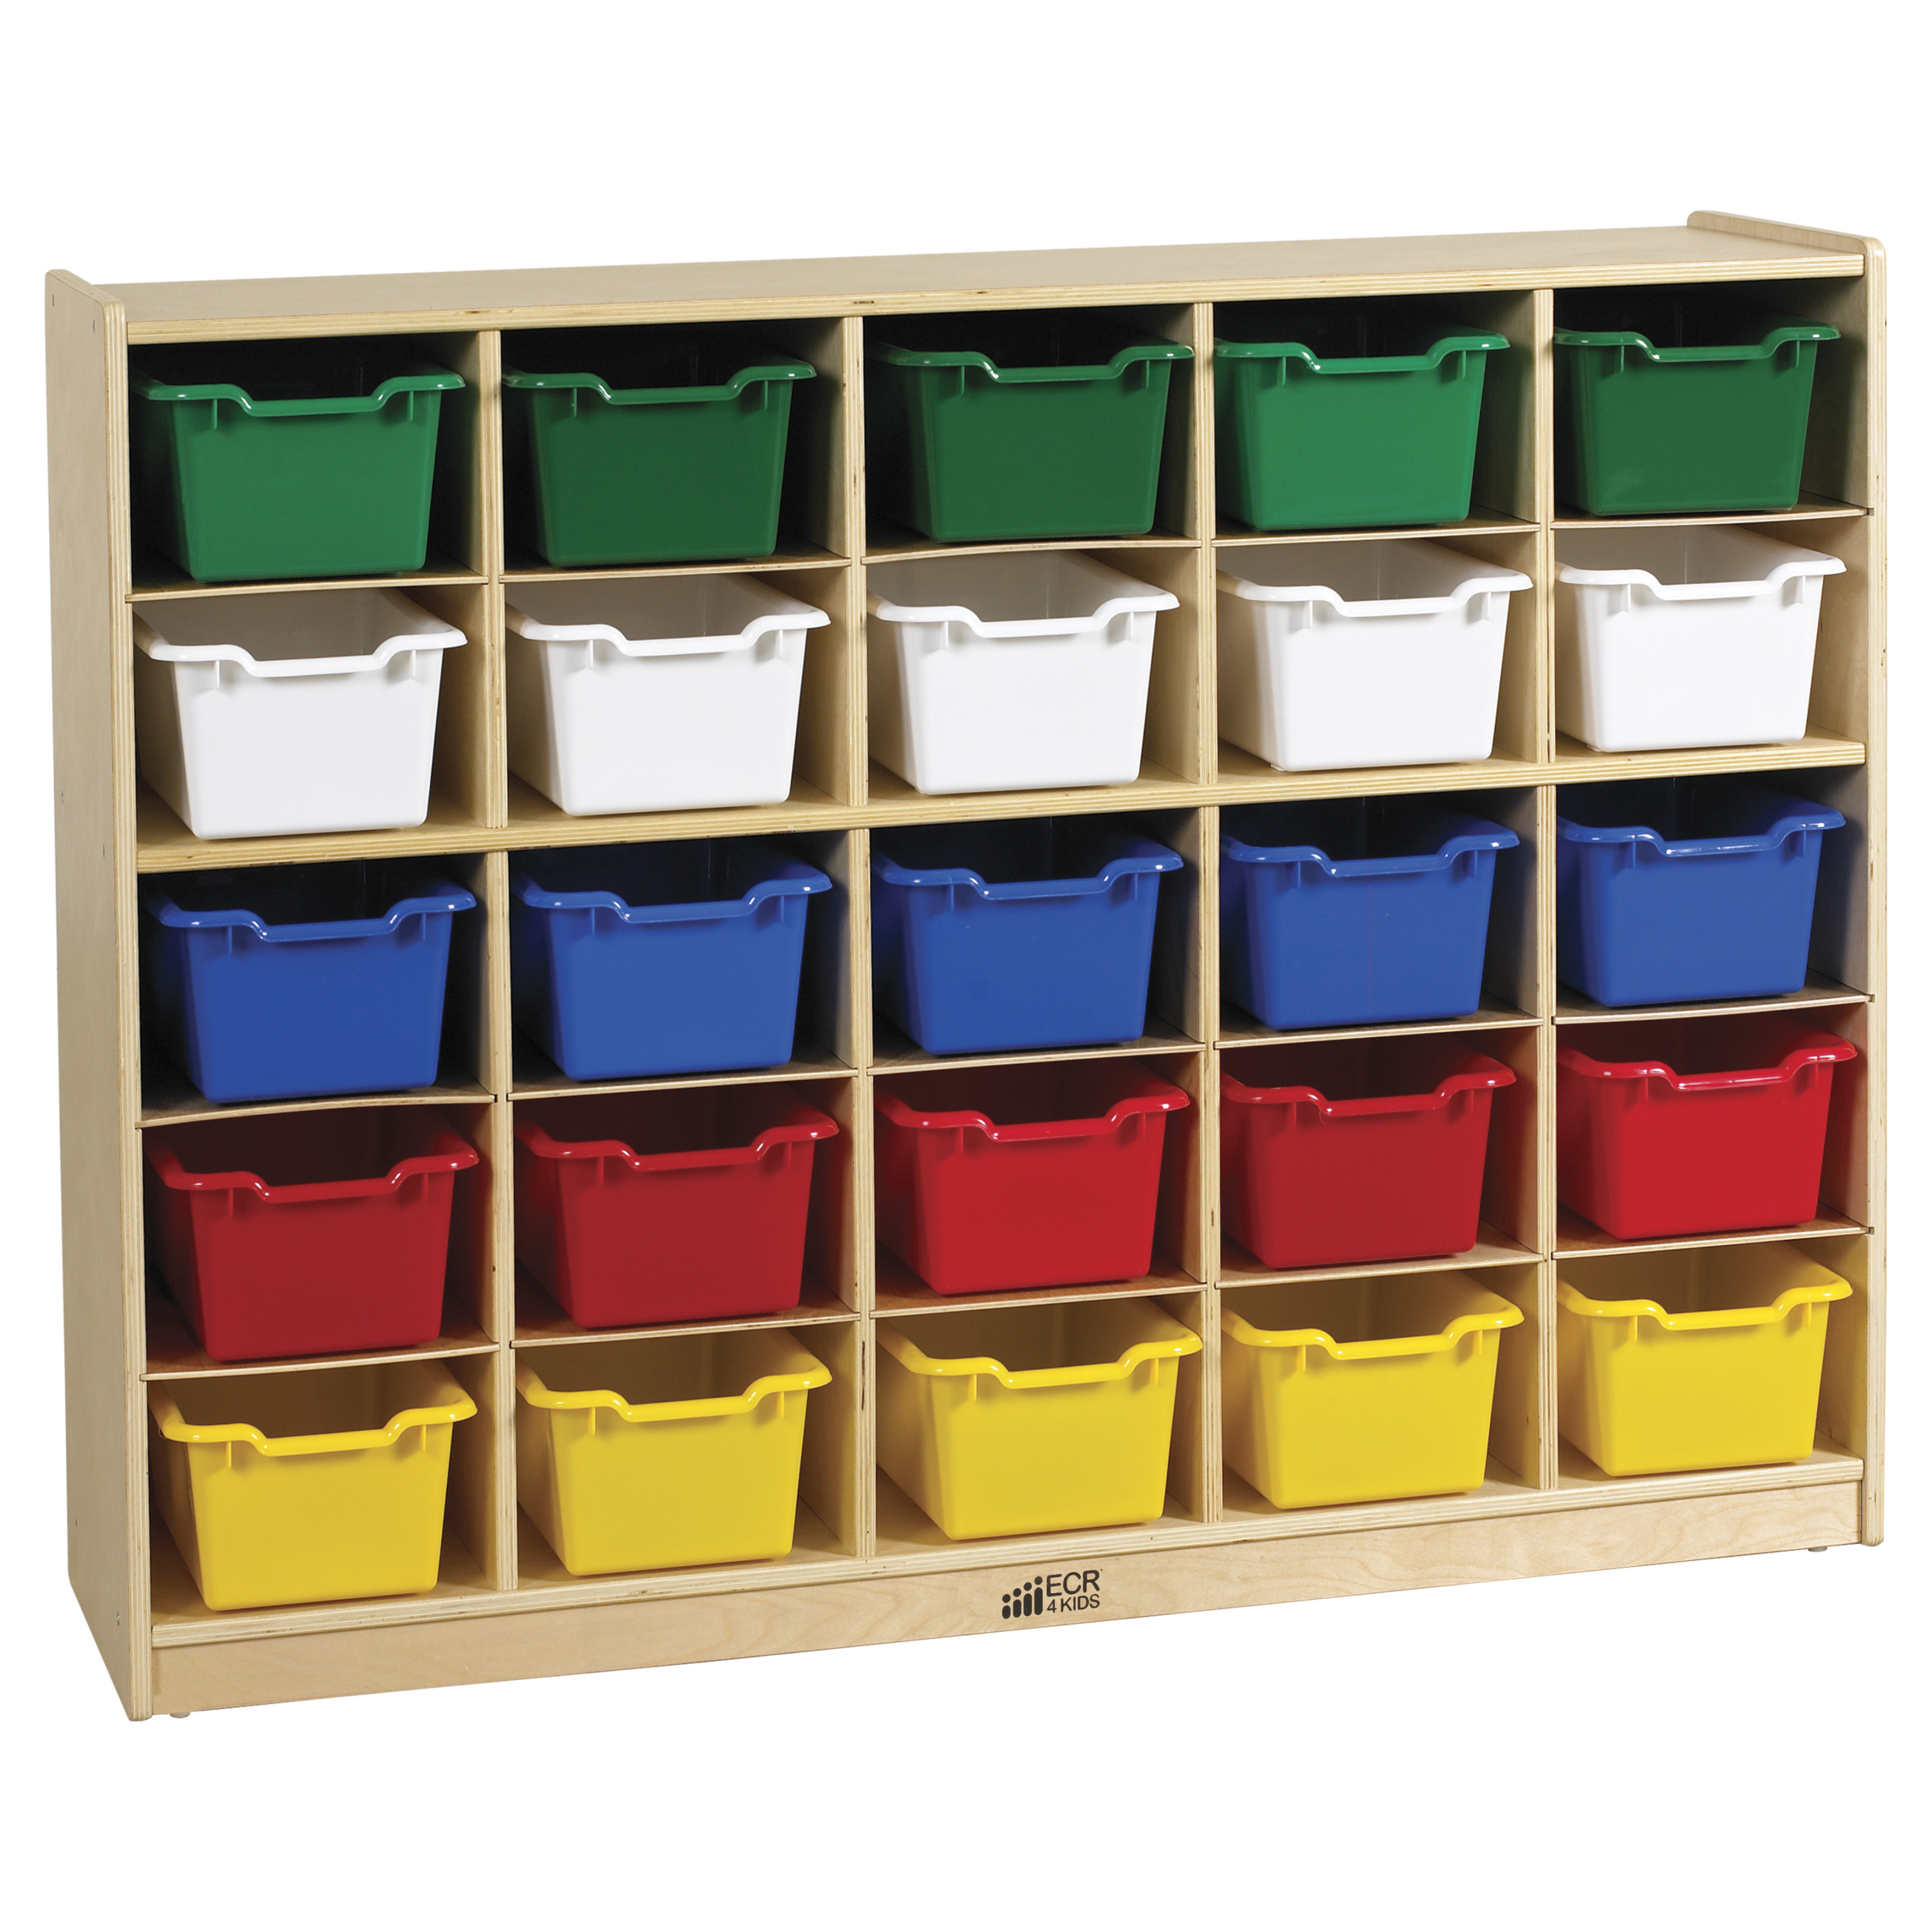 36 in. High 25 Tray Classroom Storage Cabinet w 25 Bins